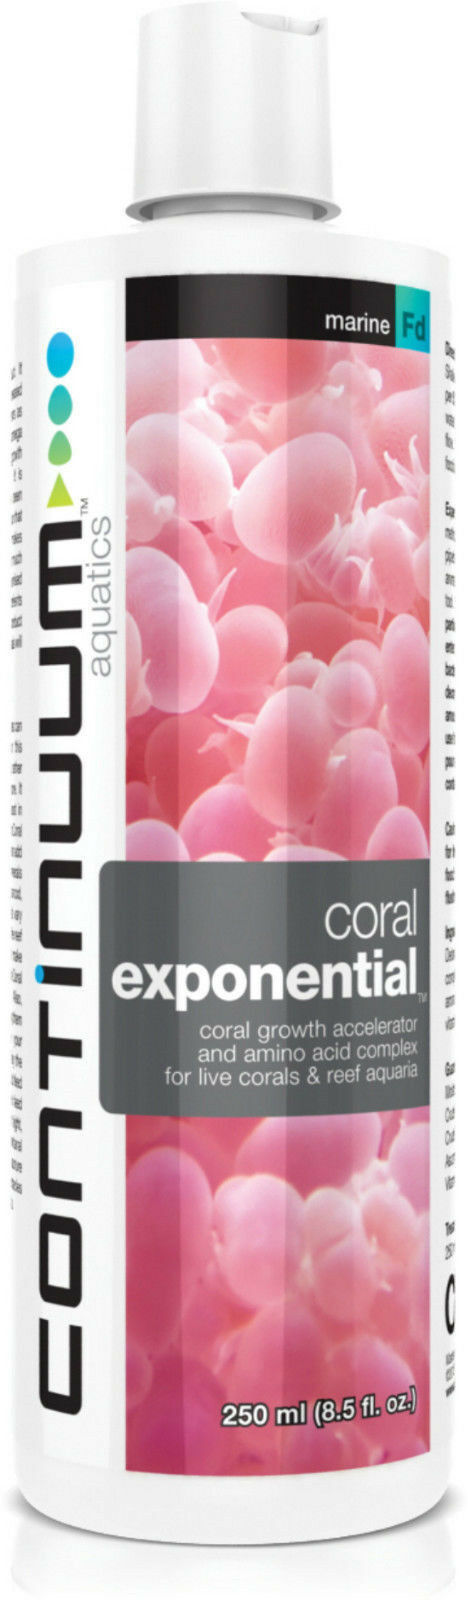 CONTINUUM CORAL GROWTH ACCELERATOR (For All Reef Aquaria) Protects and feeds